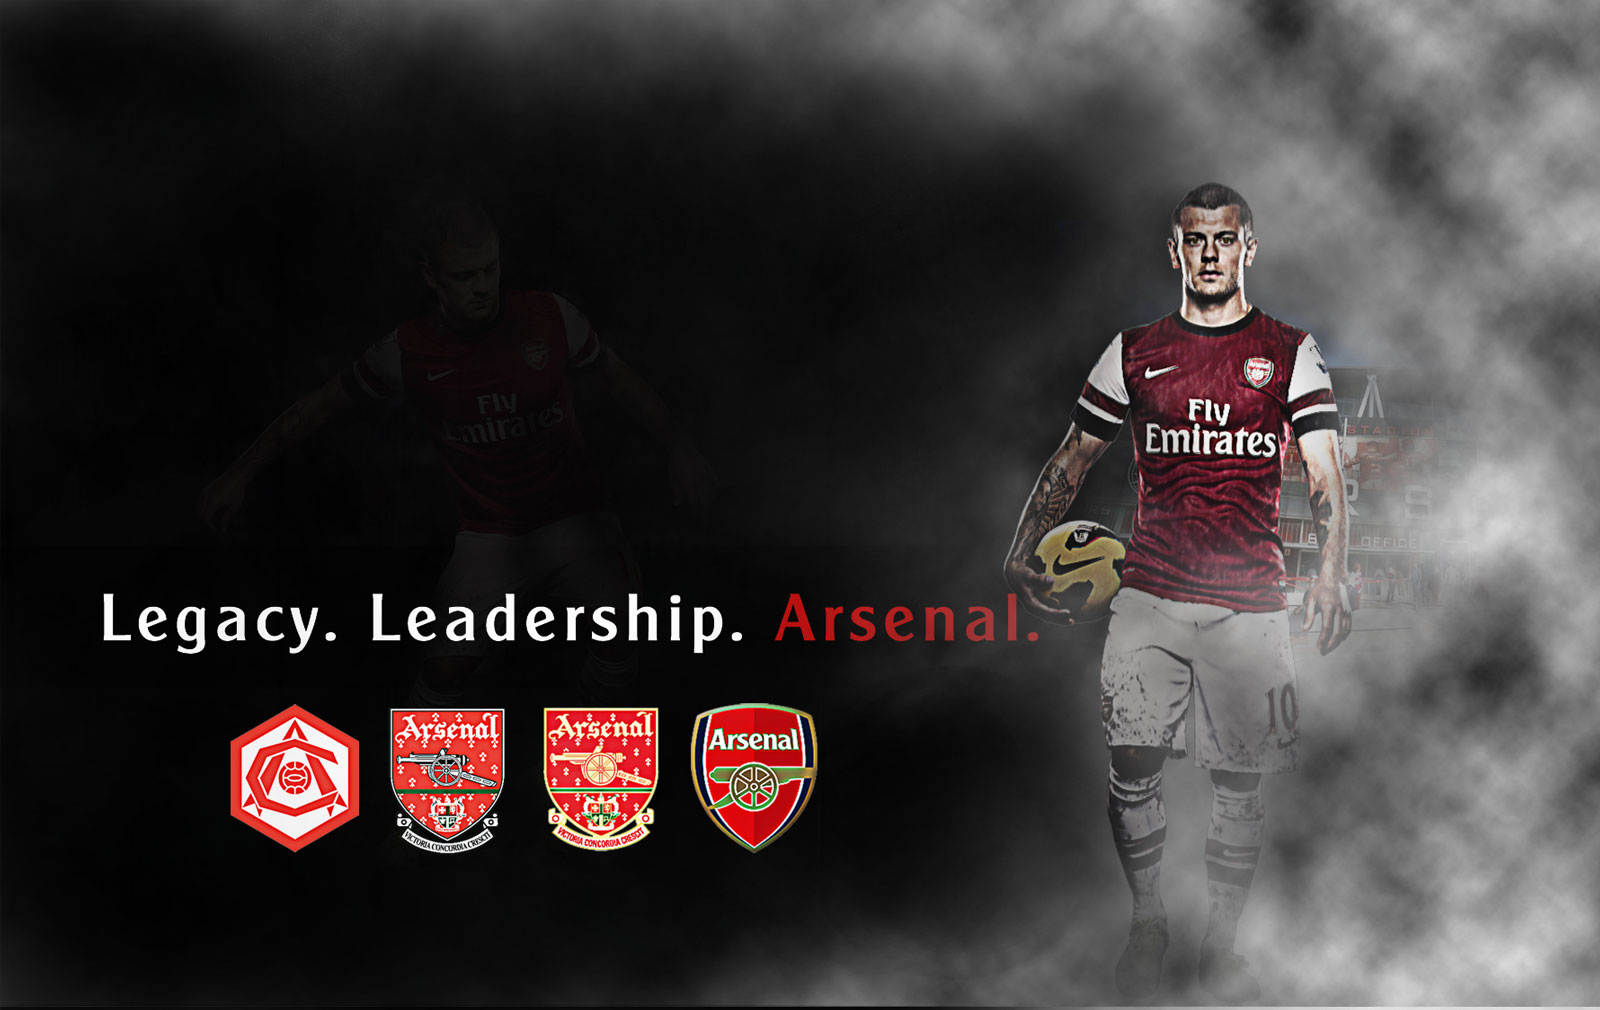 arsenal wallpaper wild country fine arts